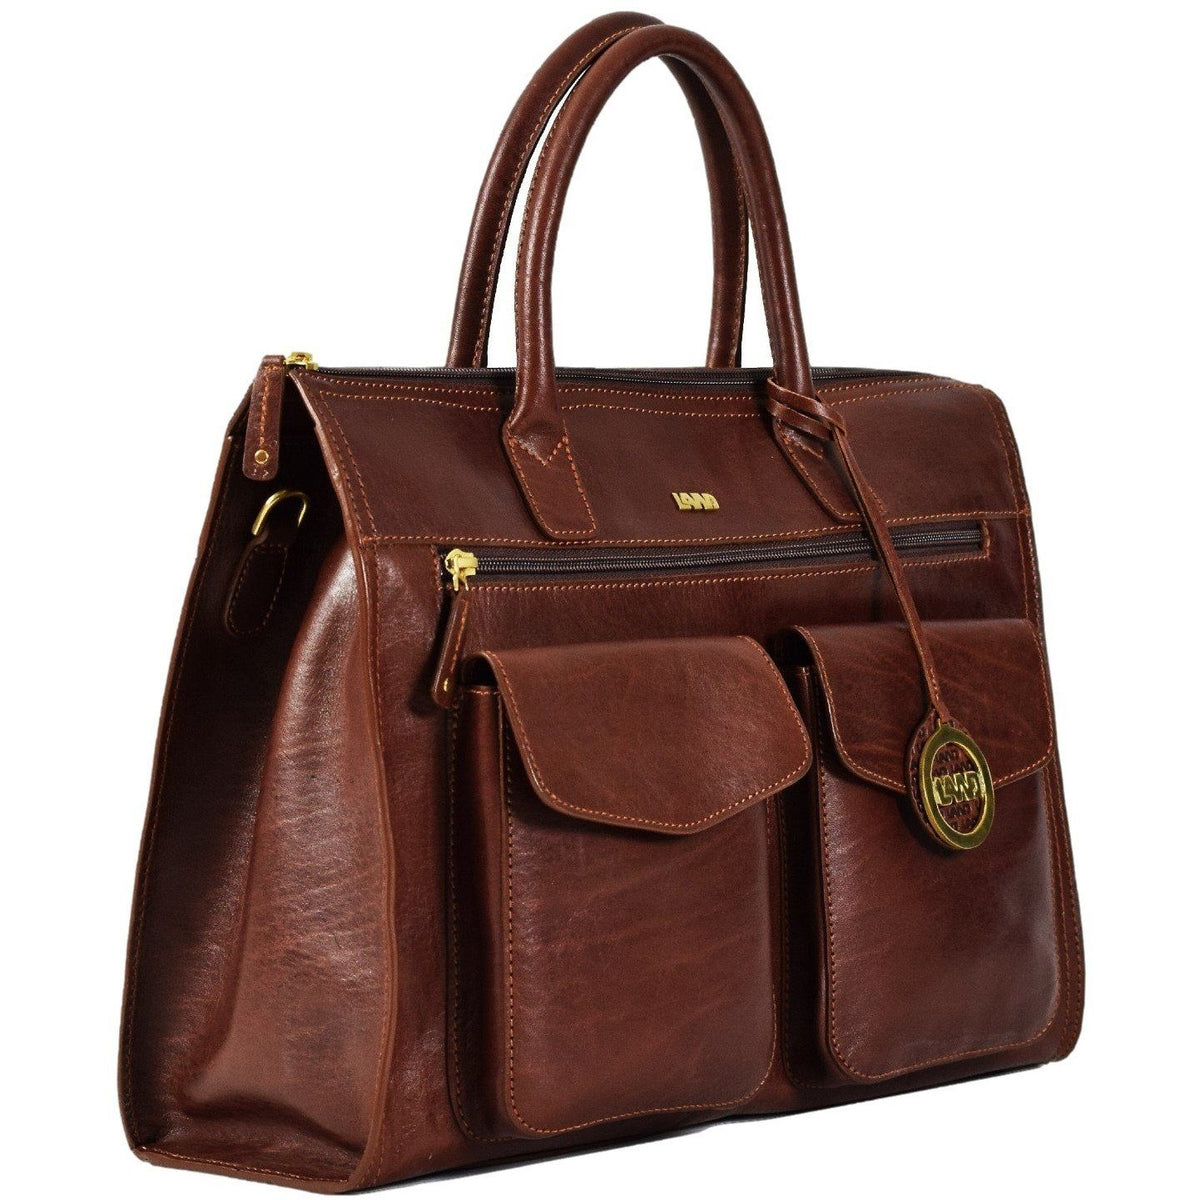 Limited Satchel, Handbag | LAND Leather